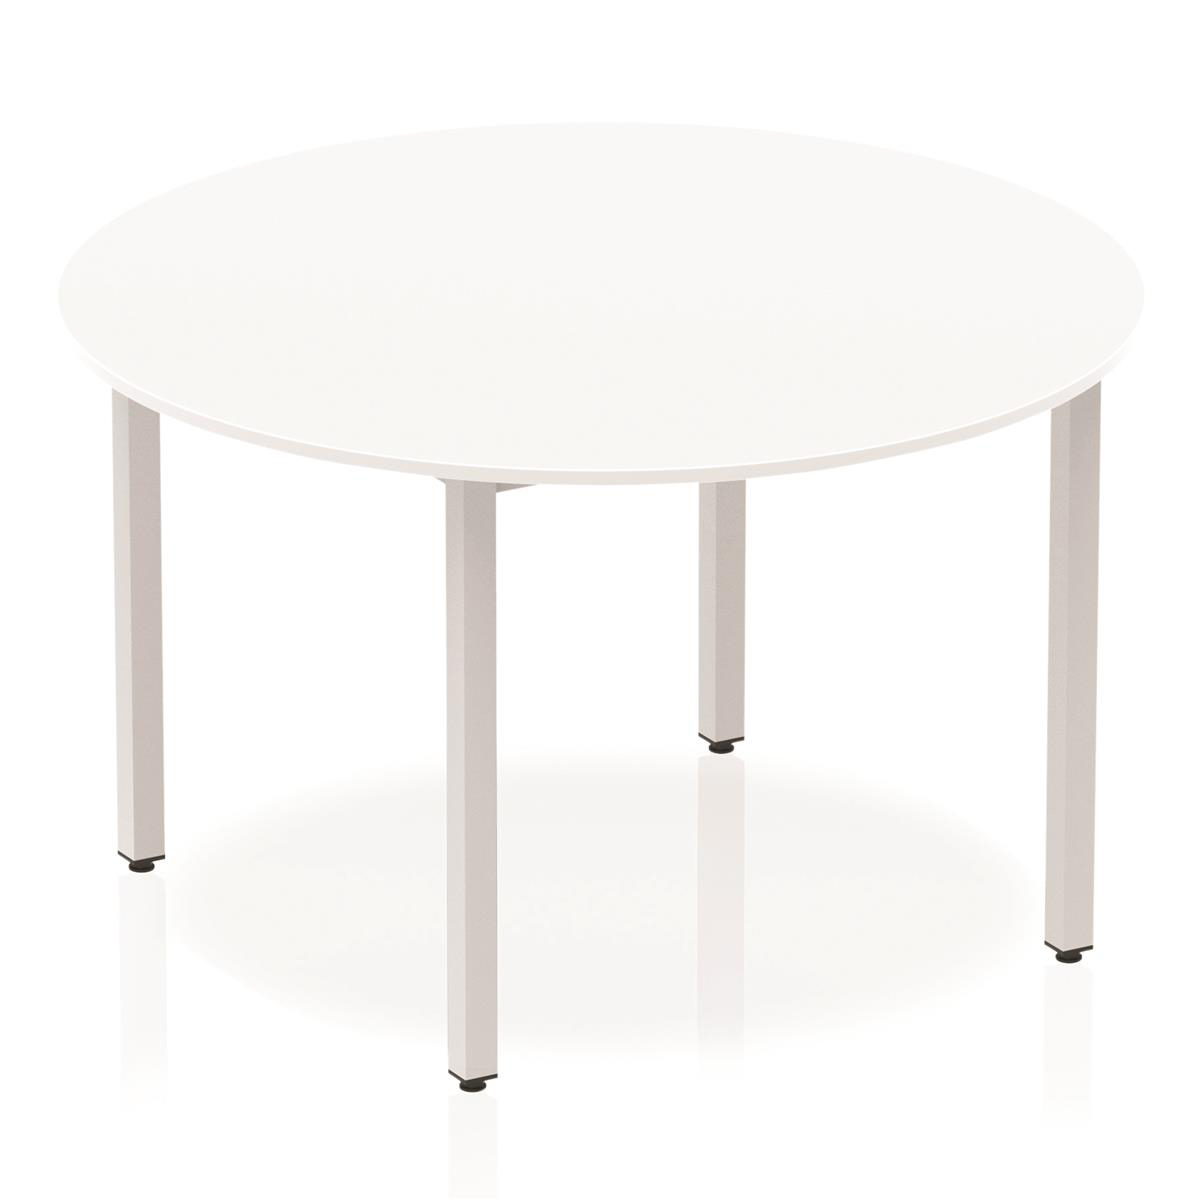 Trexus Circular Box Frame Silver Leg Table 1200mm White Ref BF00197